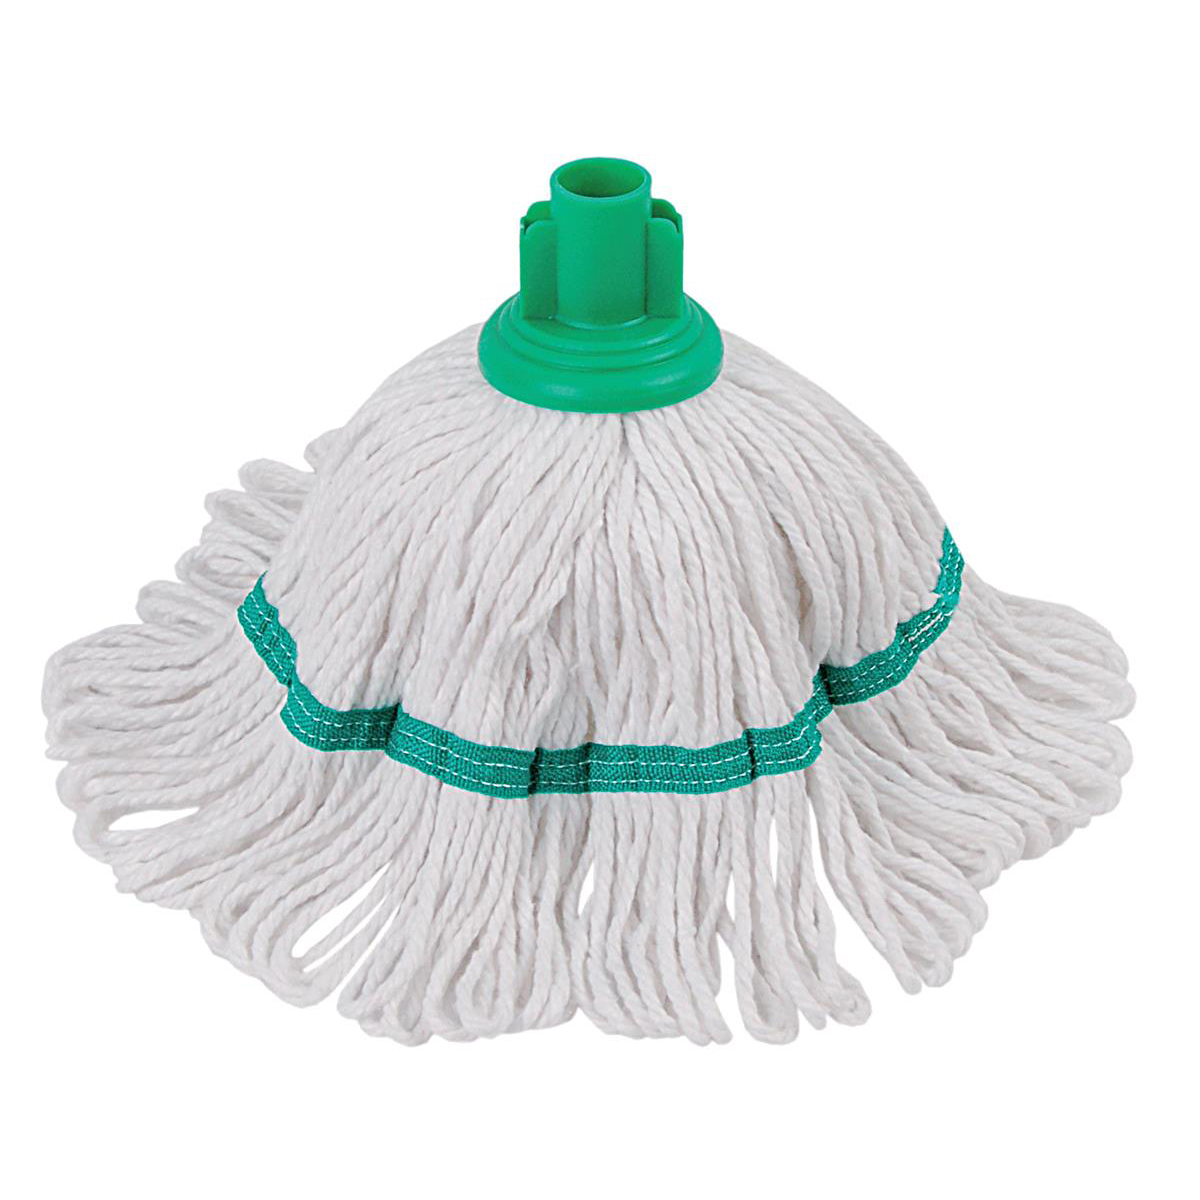 Robert Scott & Sons Hygiemix T1 Socket Cotton & Synthetic Colour-coded Mop 200g Green Ref 103062GREEN